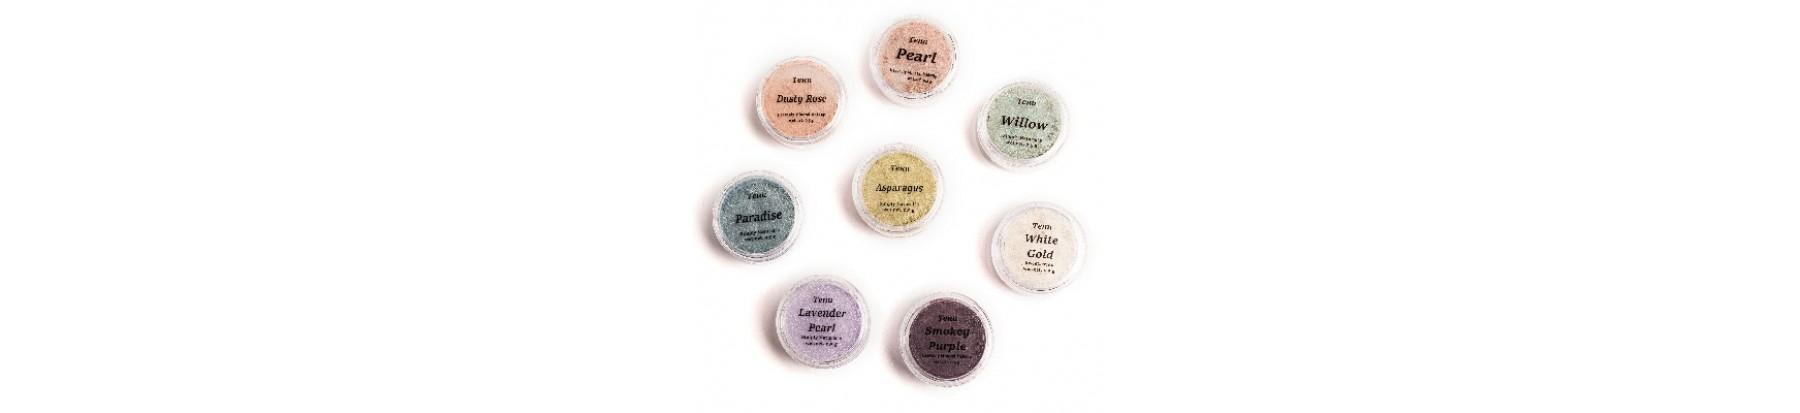 Тени Heavenly Mineral Makeupв интернет-магазине MineralMix